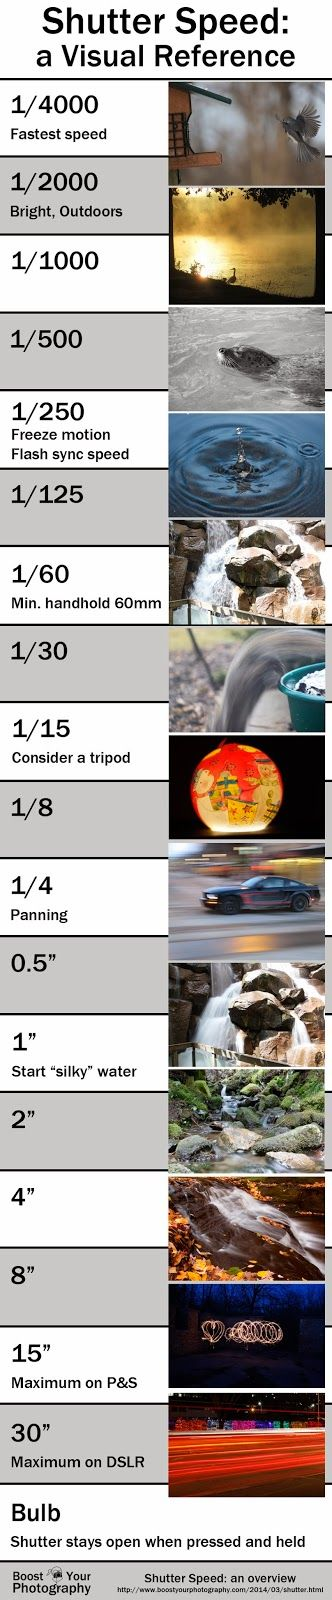 Shutter Speed: an overview